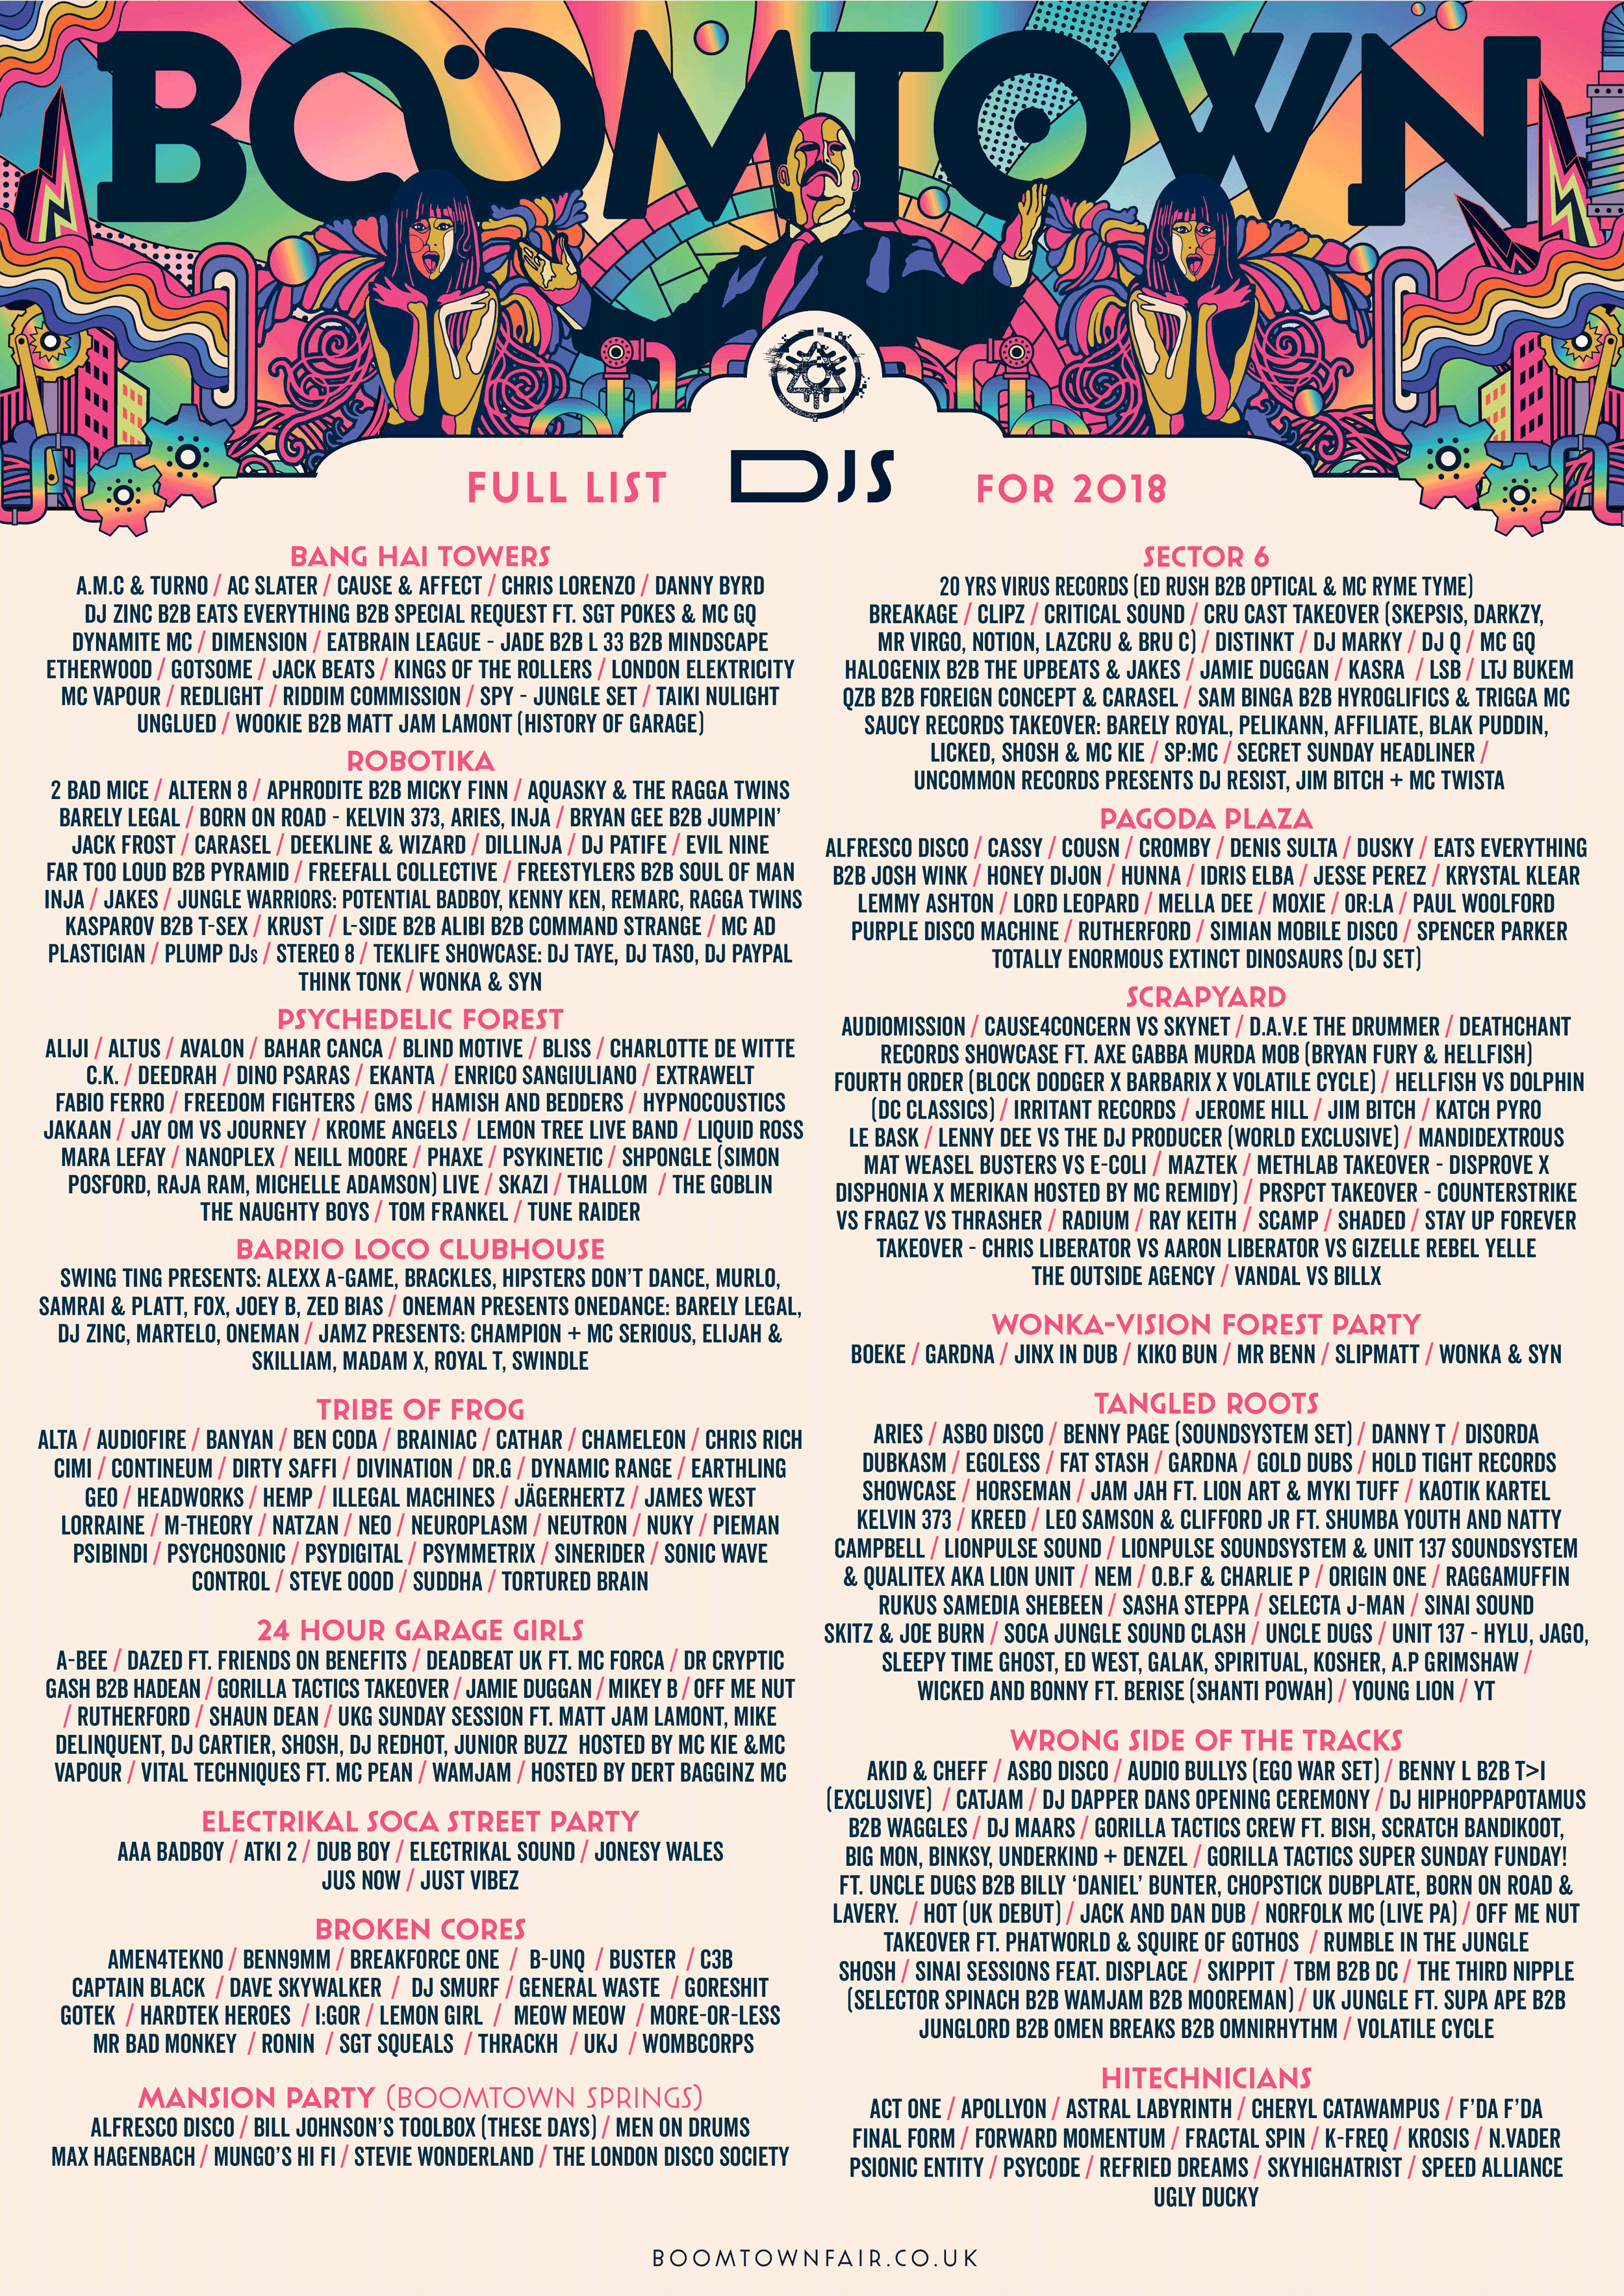 Full Line Up: Bands and DJs | Boomtown Chapter 12 - New